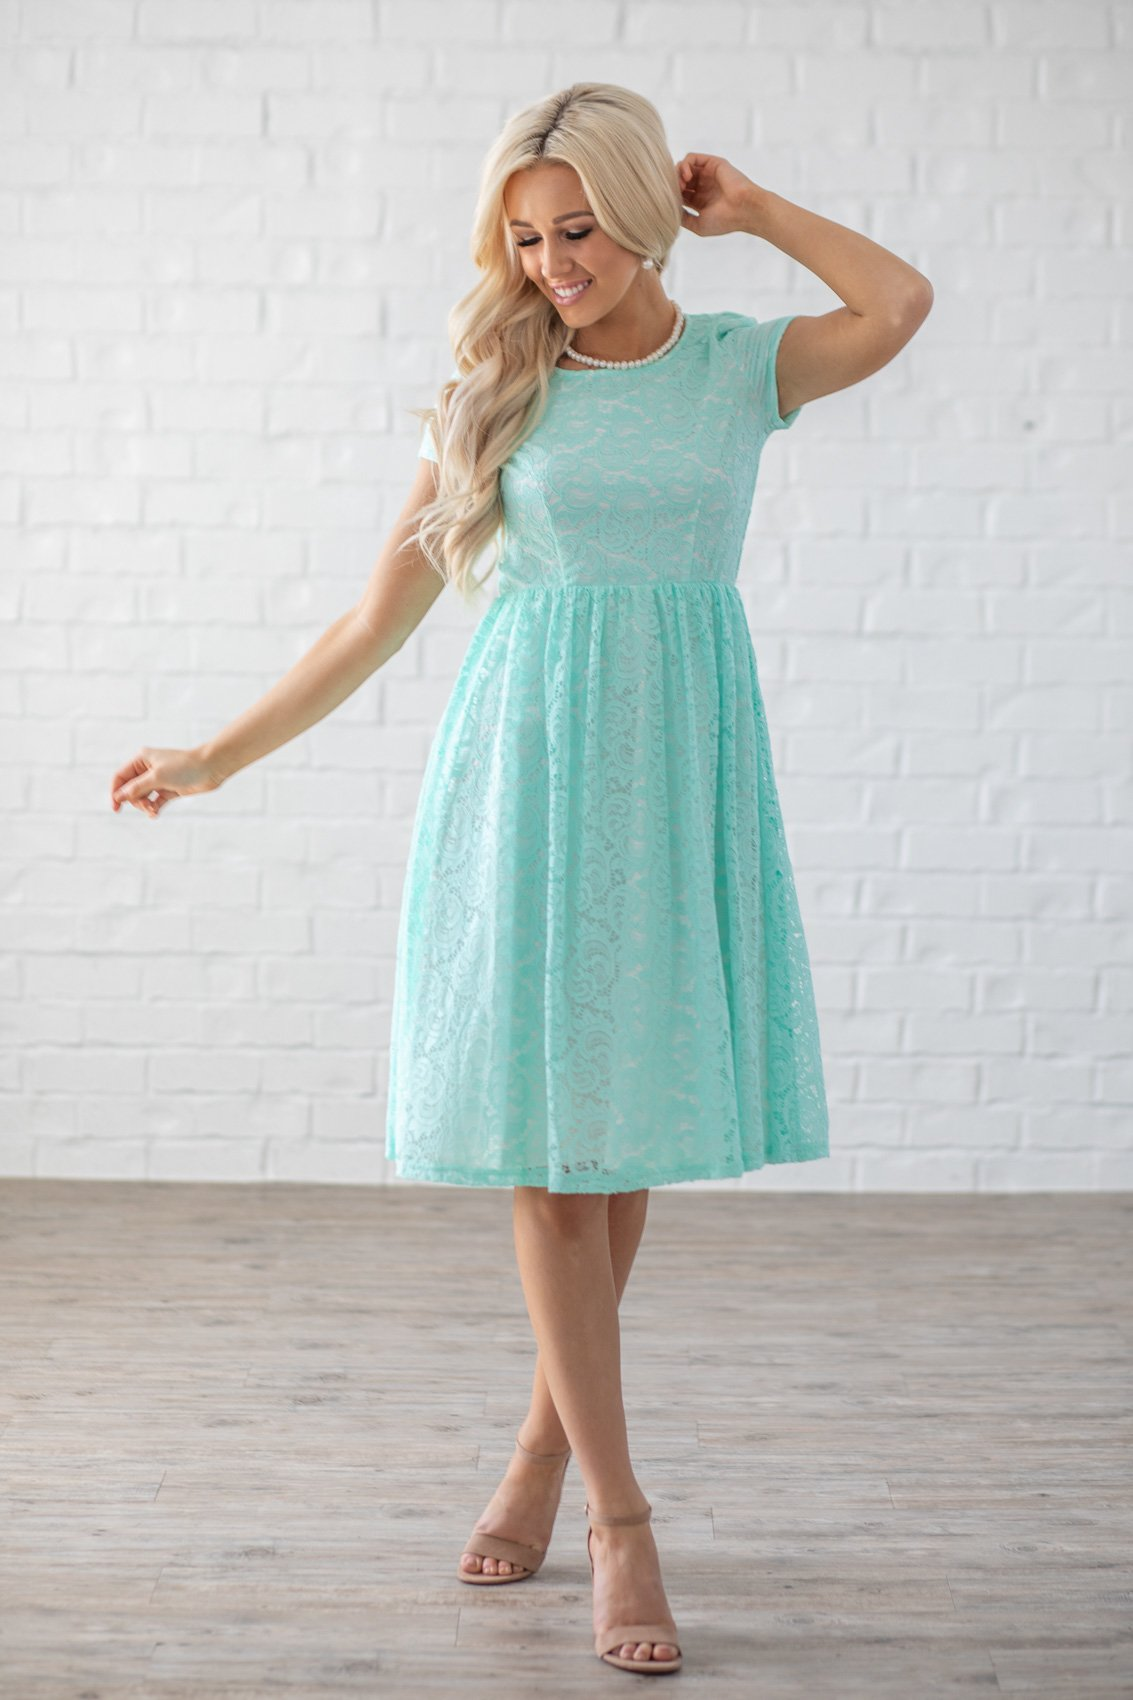 810ee6f6a83 Jenna Modest Lace Dress or Bridesmaid Dress in Mint w White Lining